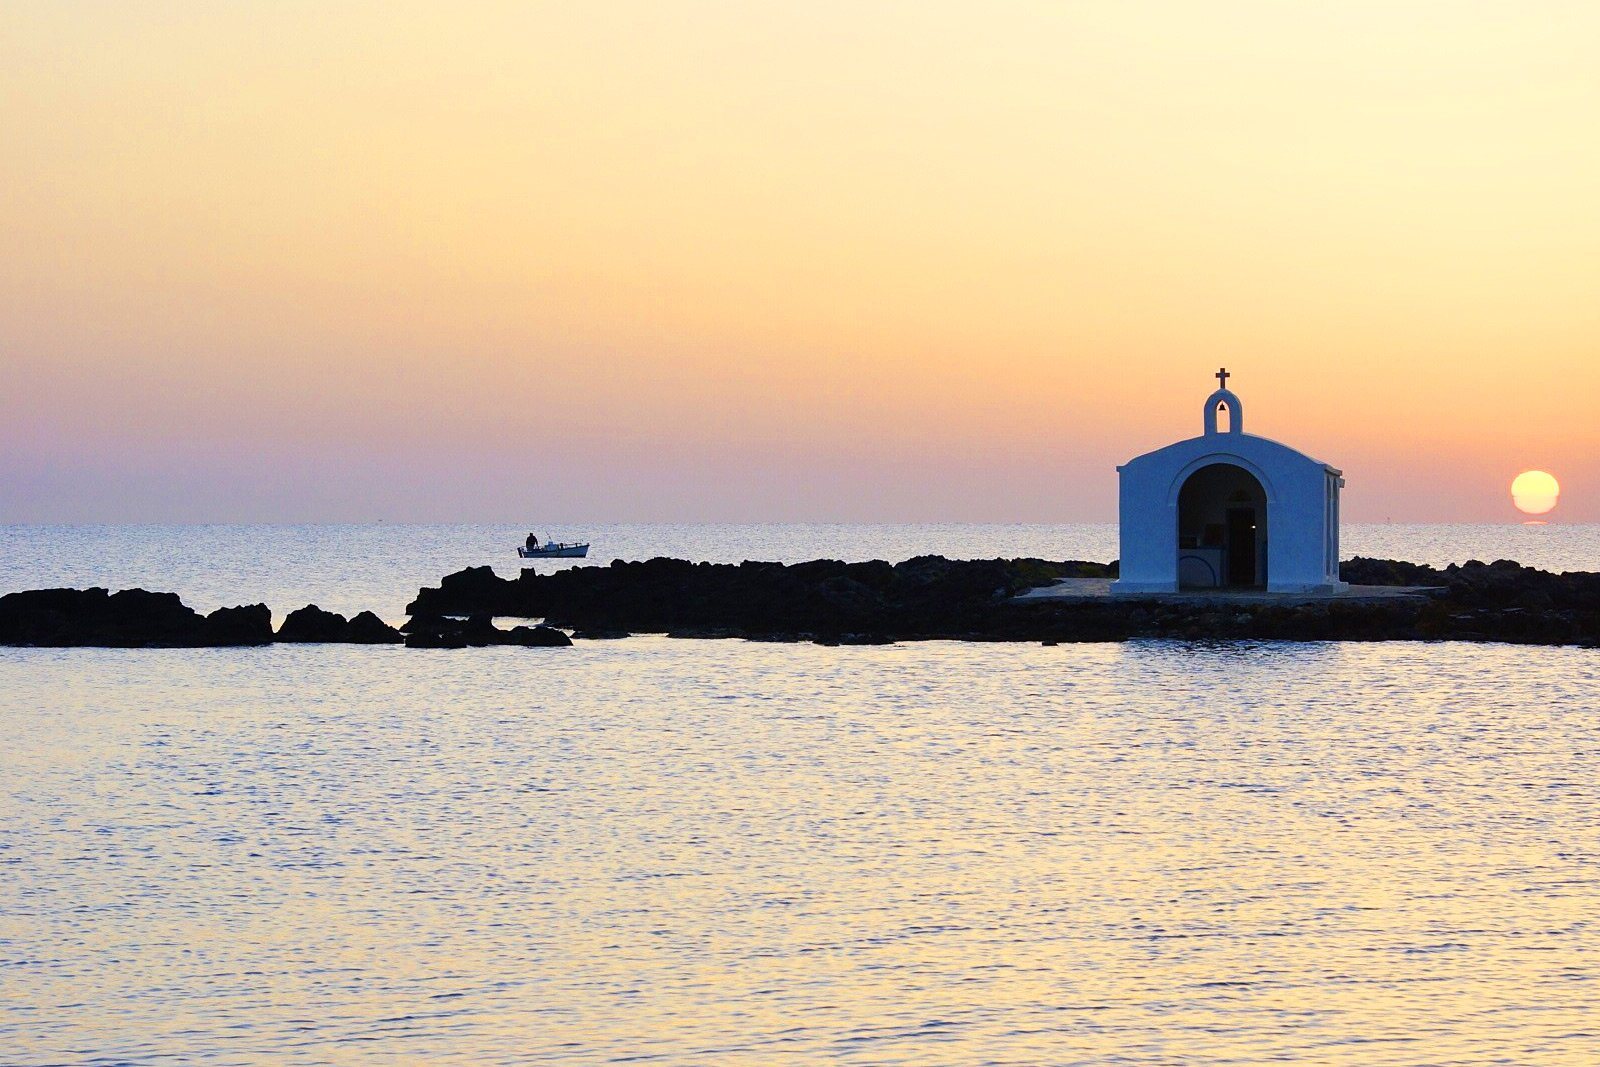 Saint Nikolas church, Crete